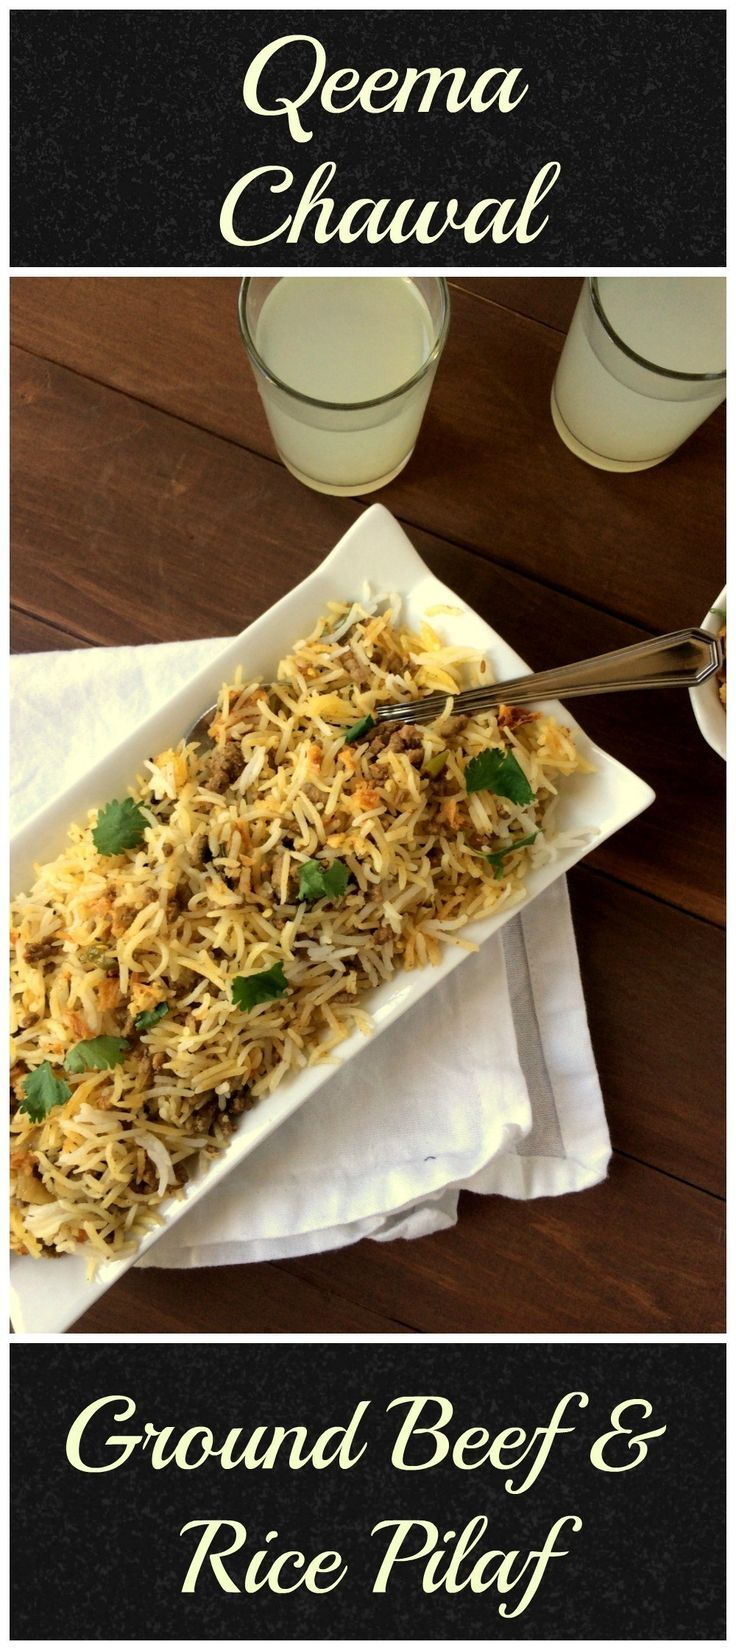 Keema Chawal Pakistani Recipe Ground Beef Rice Pilaf So Kid Friendly Flour Spice Recipe Ground Beef Rice Beef And Rice Food